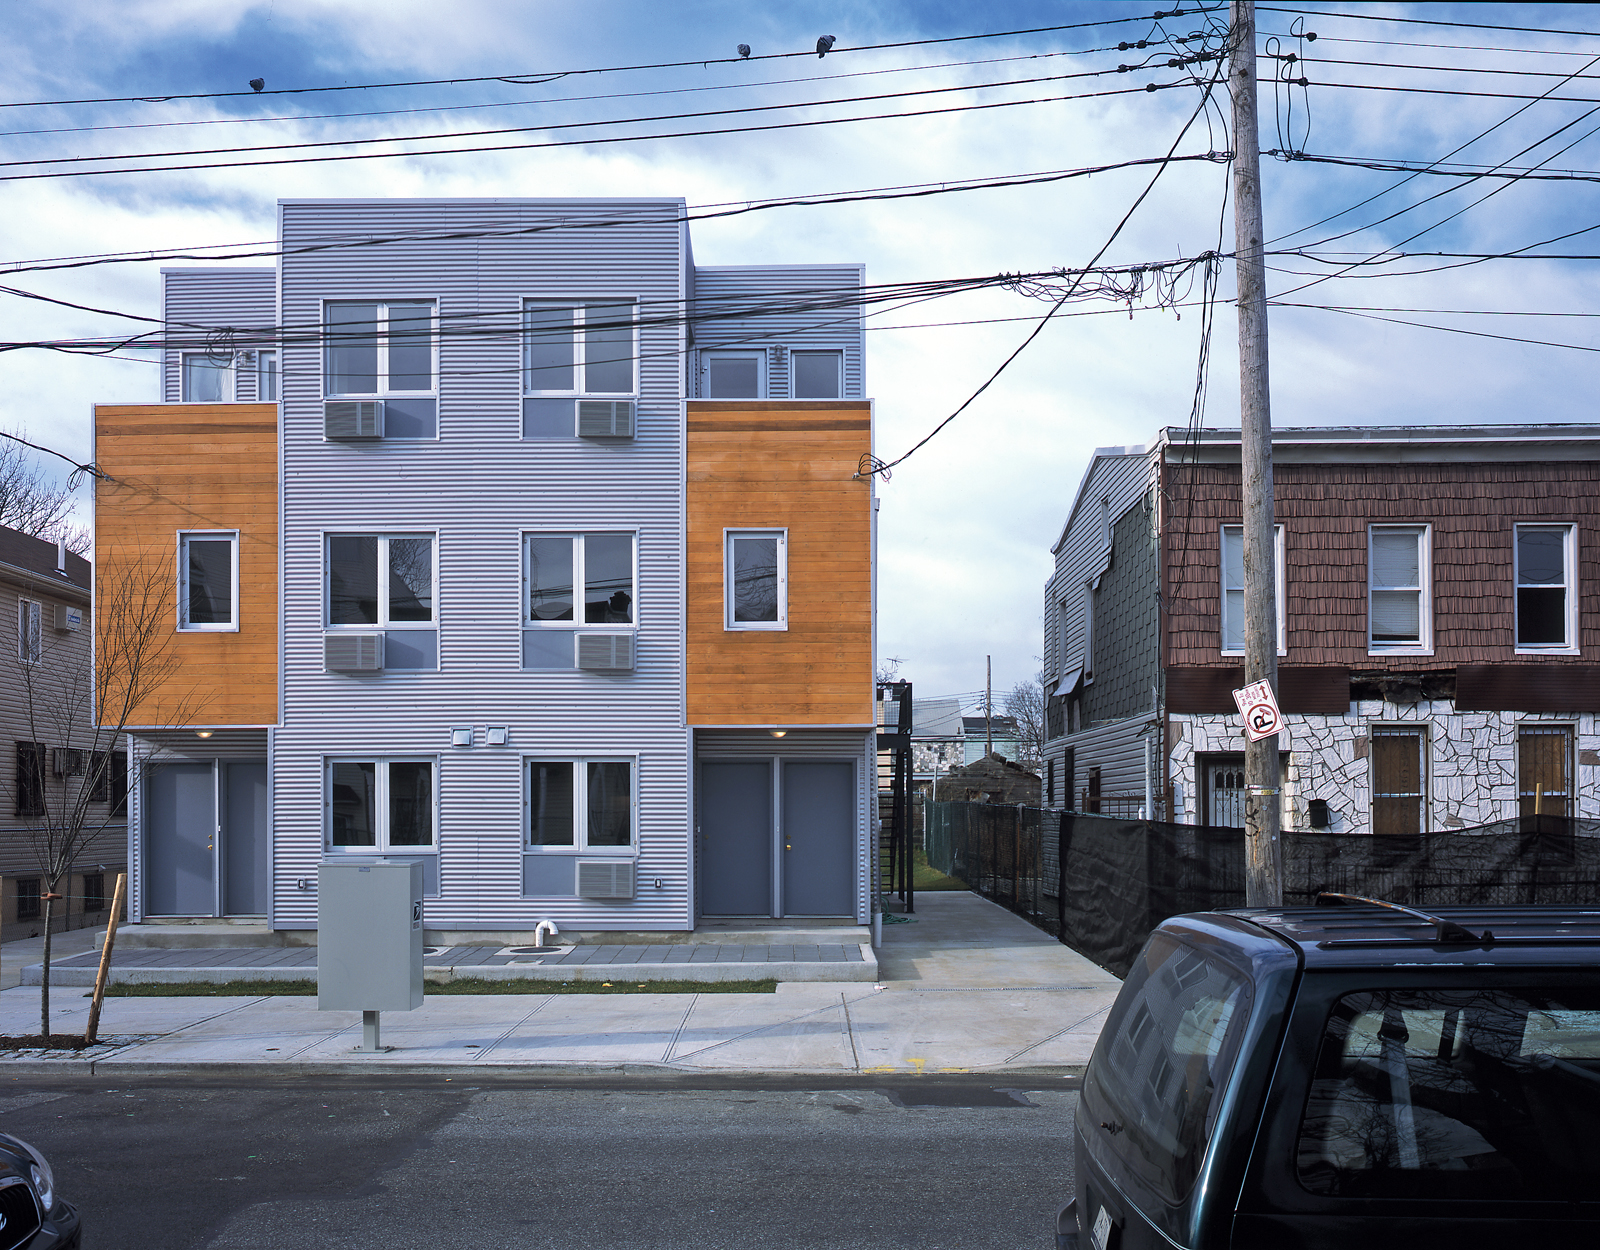 Modern low-income housing in Brooklyn